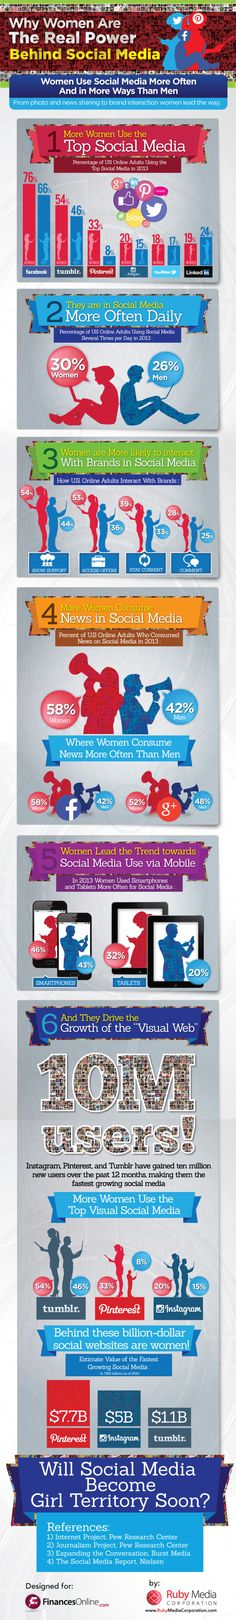 Top Social Media Data Anaylis Reveals How Influential Women Have Become #Infographic | via #BornToBeSocial